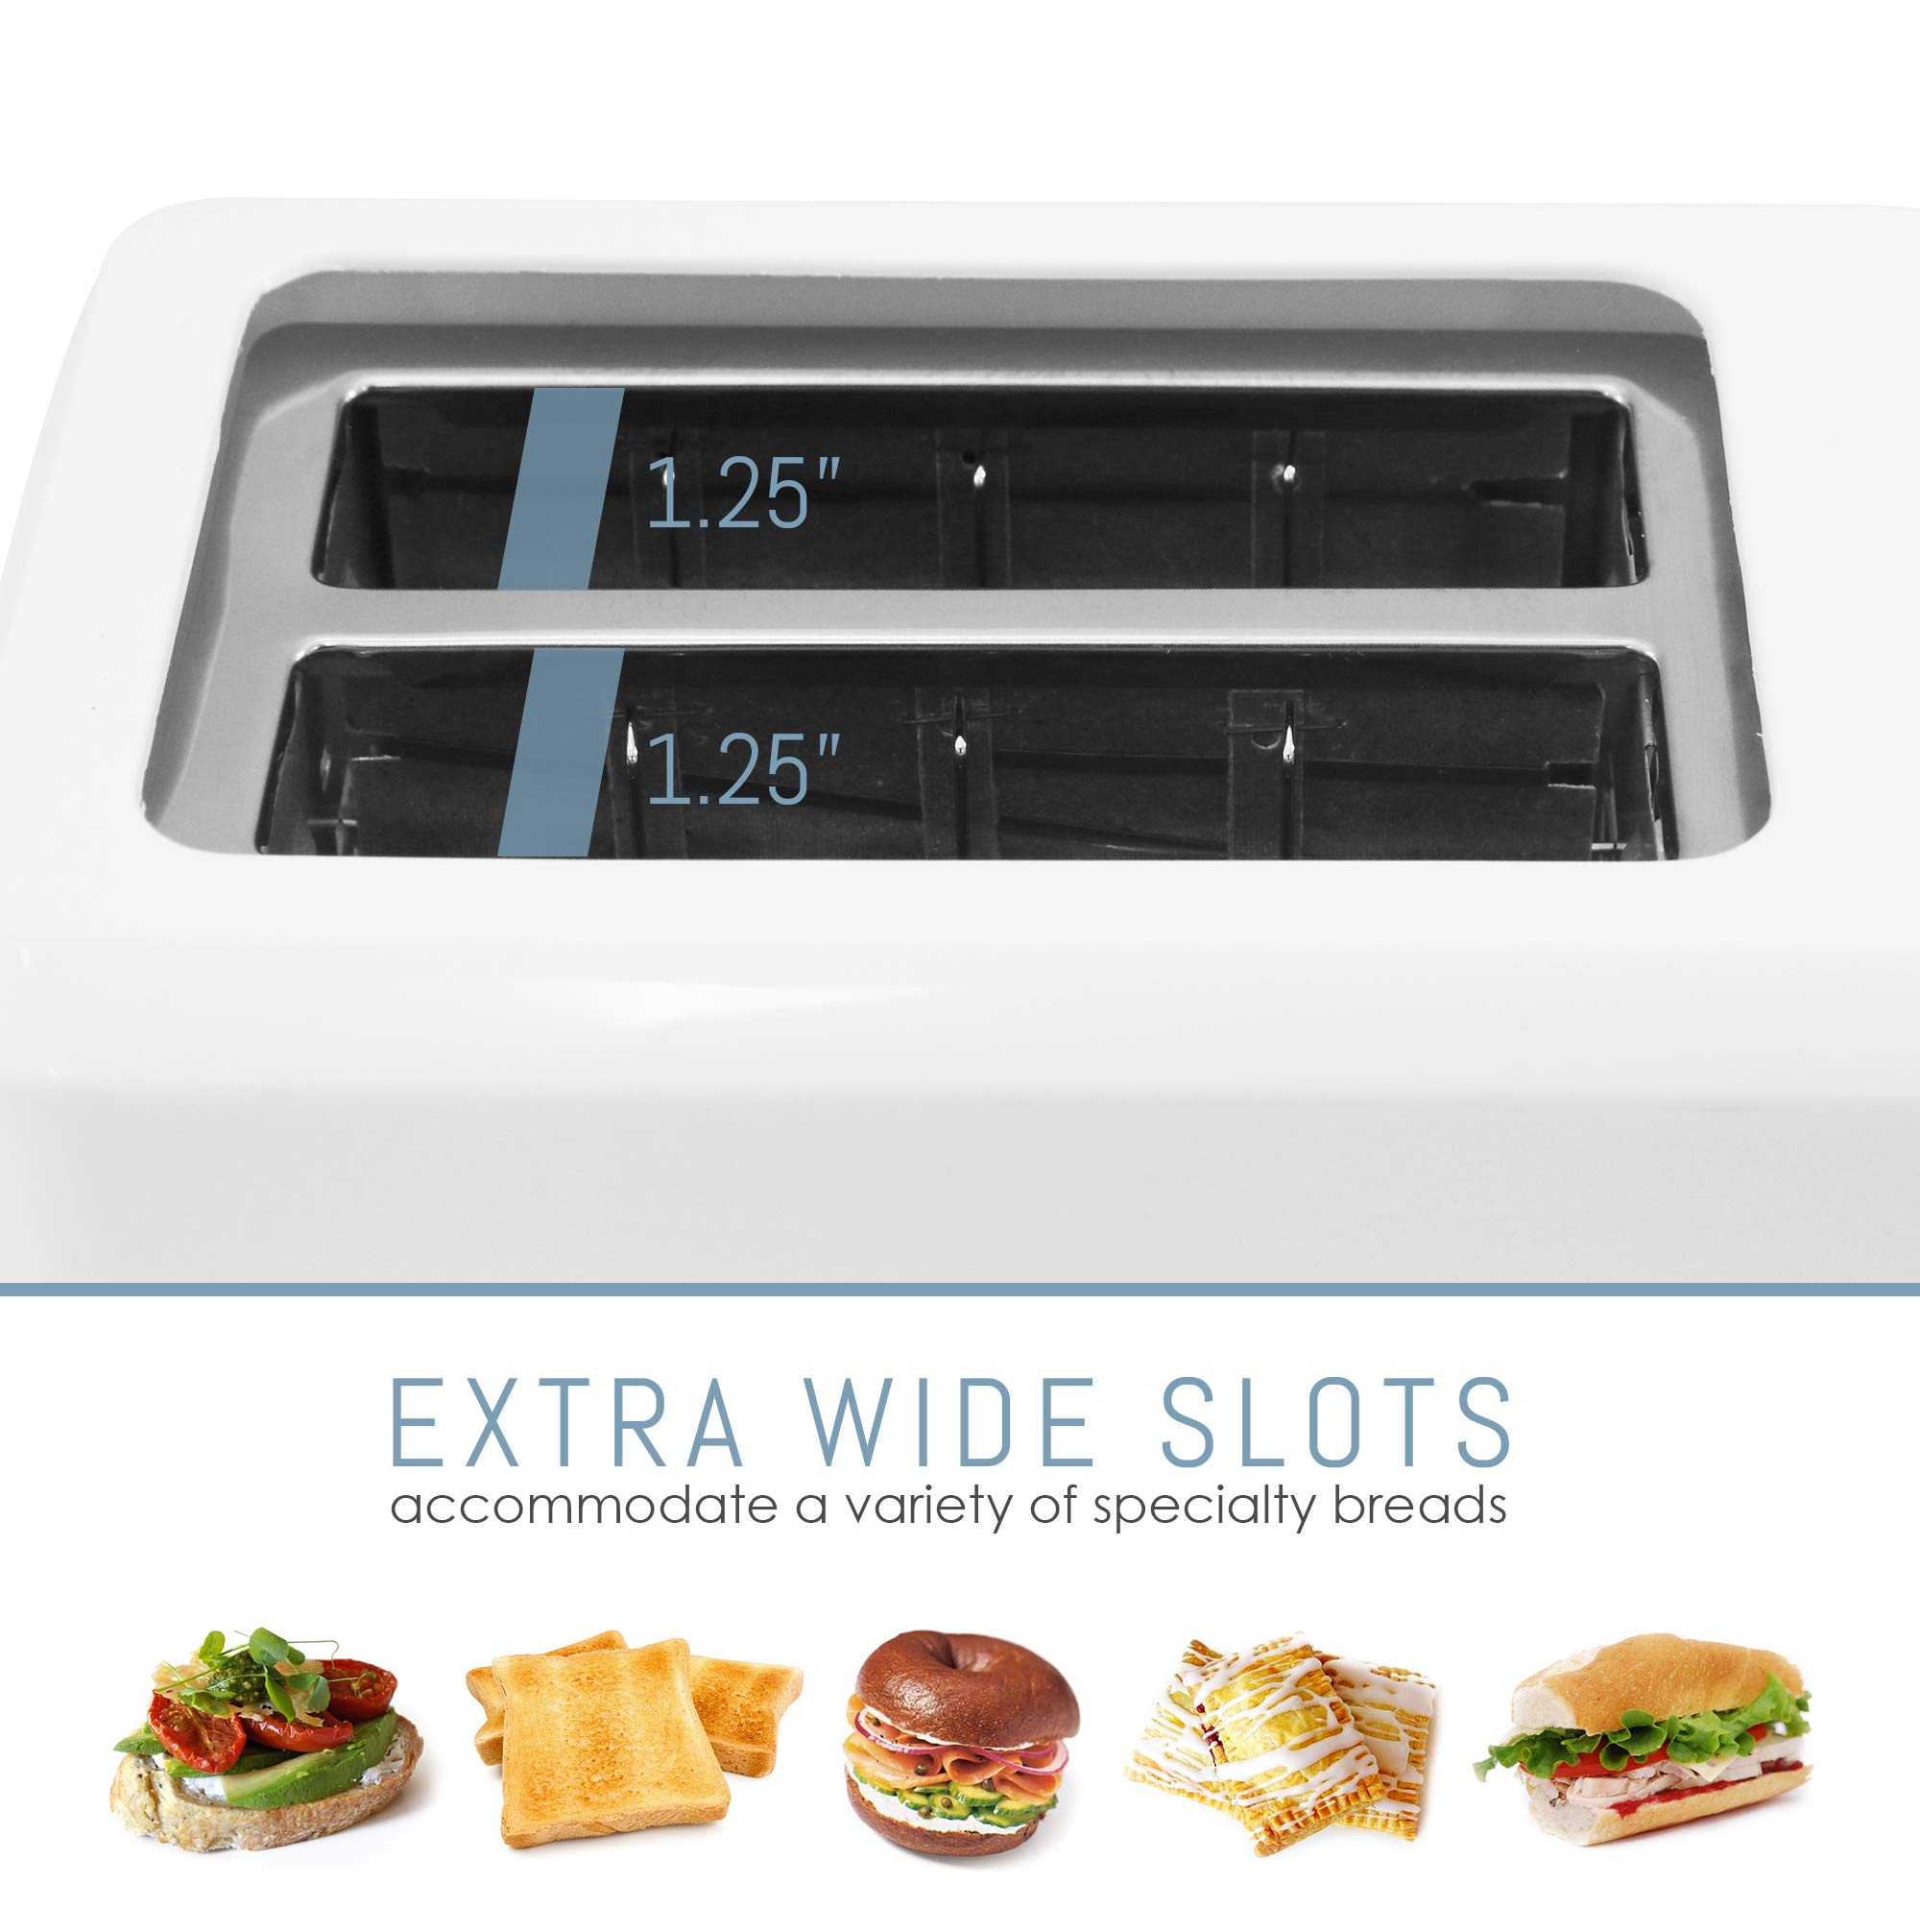 Elite Cuisine ECT-1027 Cool Touch Toaster with Extra Wide 1.25'' Slots for Bagels and Specialty Breads, 2 Slices, White by Elite Cuisine (Image #4)